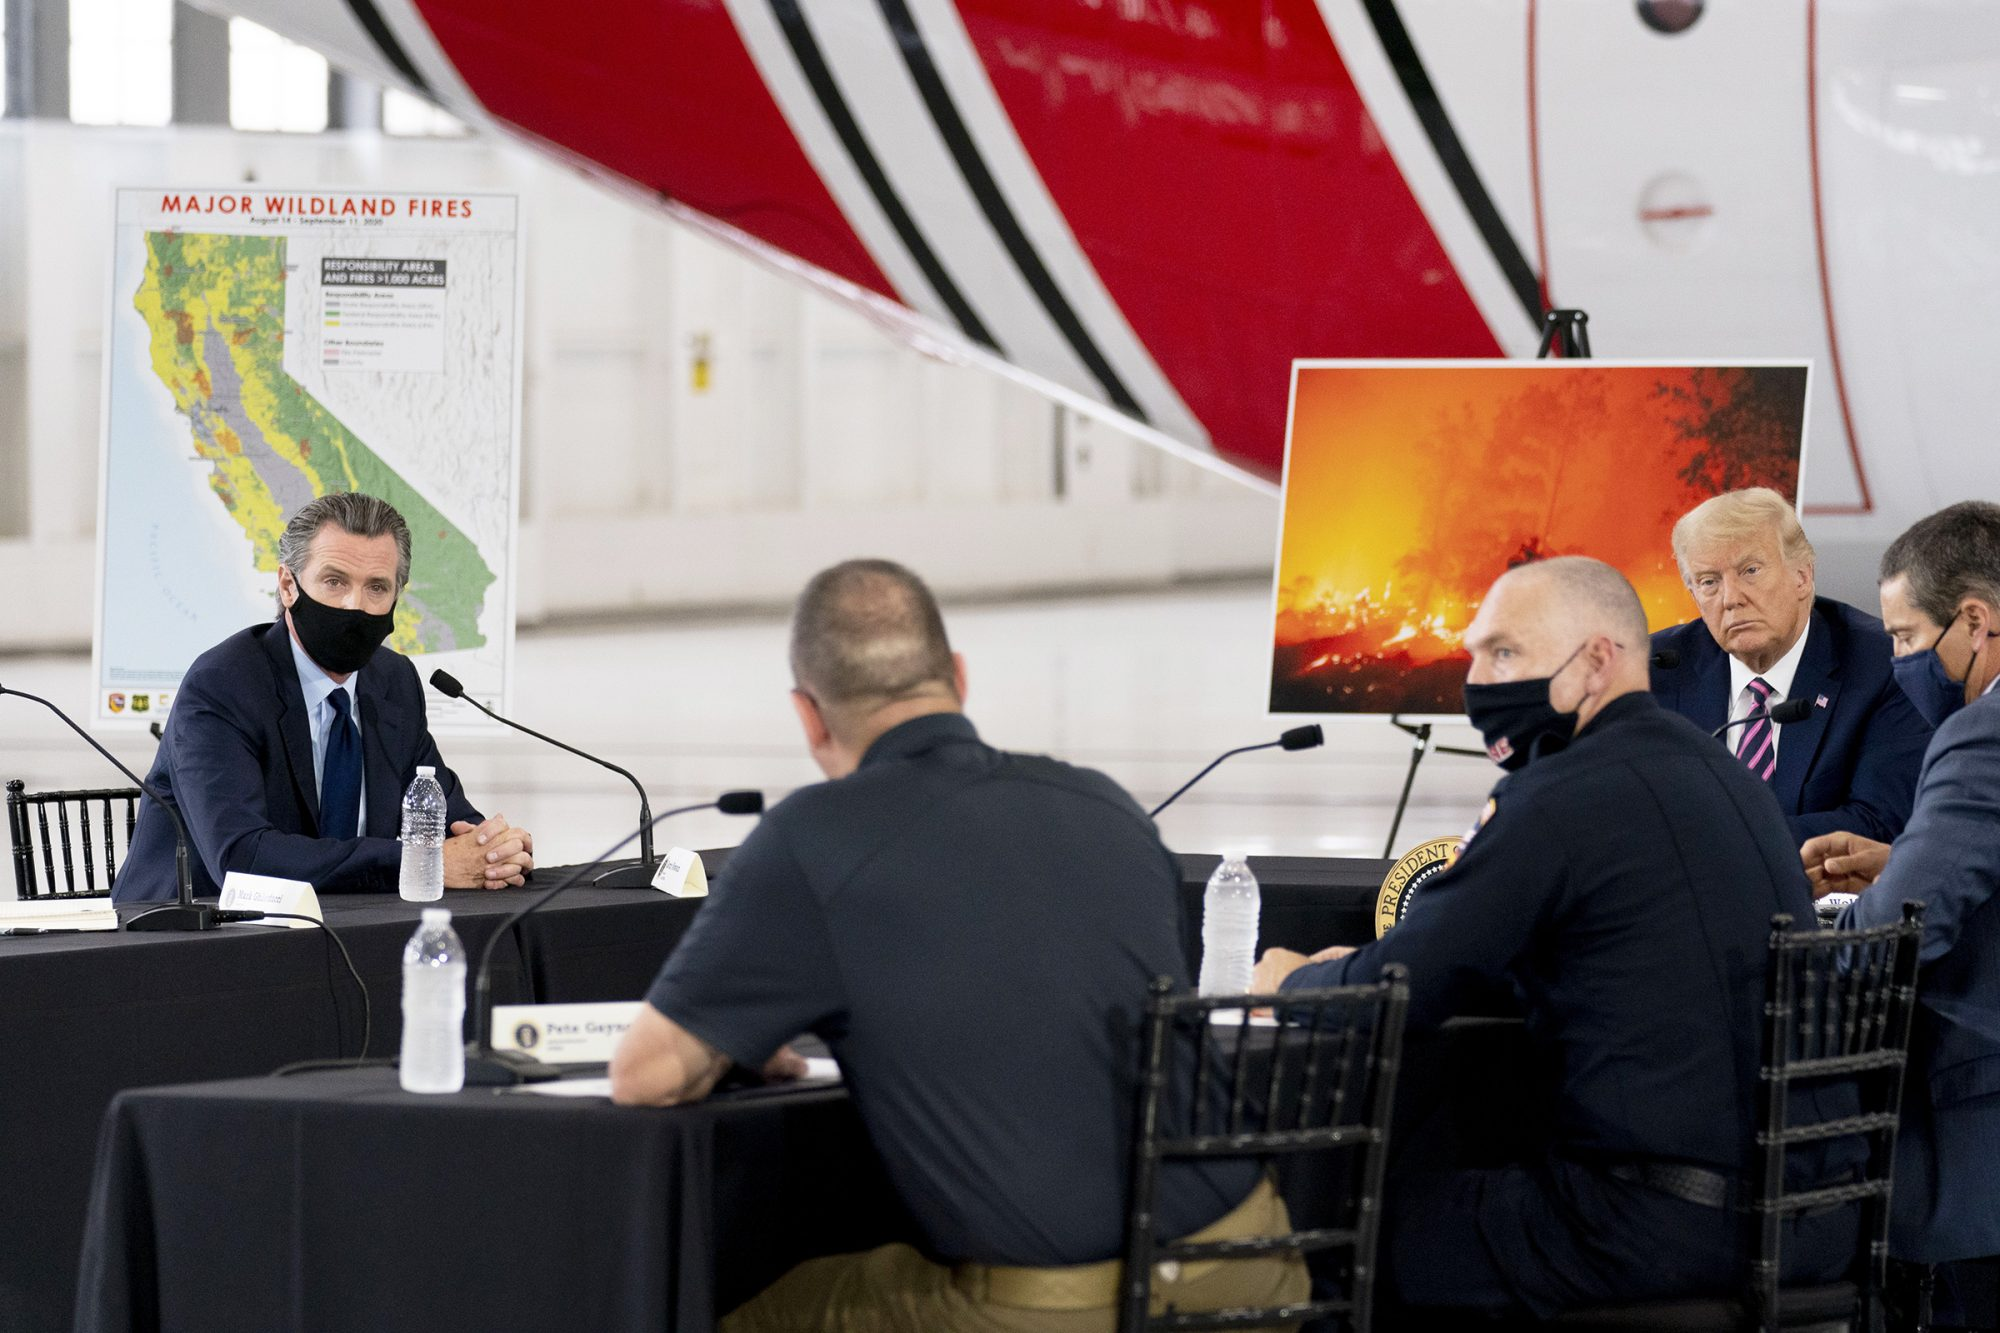 President Donald Trump participates in a briefing on wildfires with Calif. Gov. Gavin Newsom